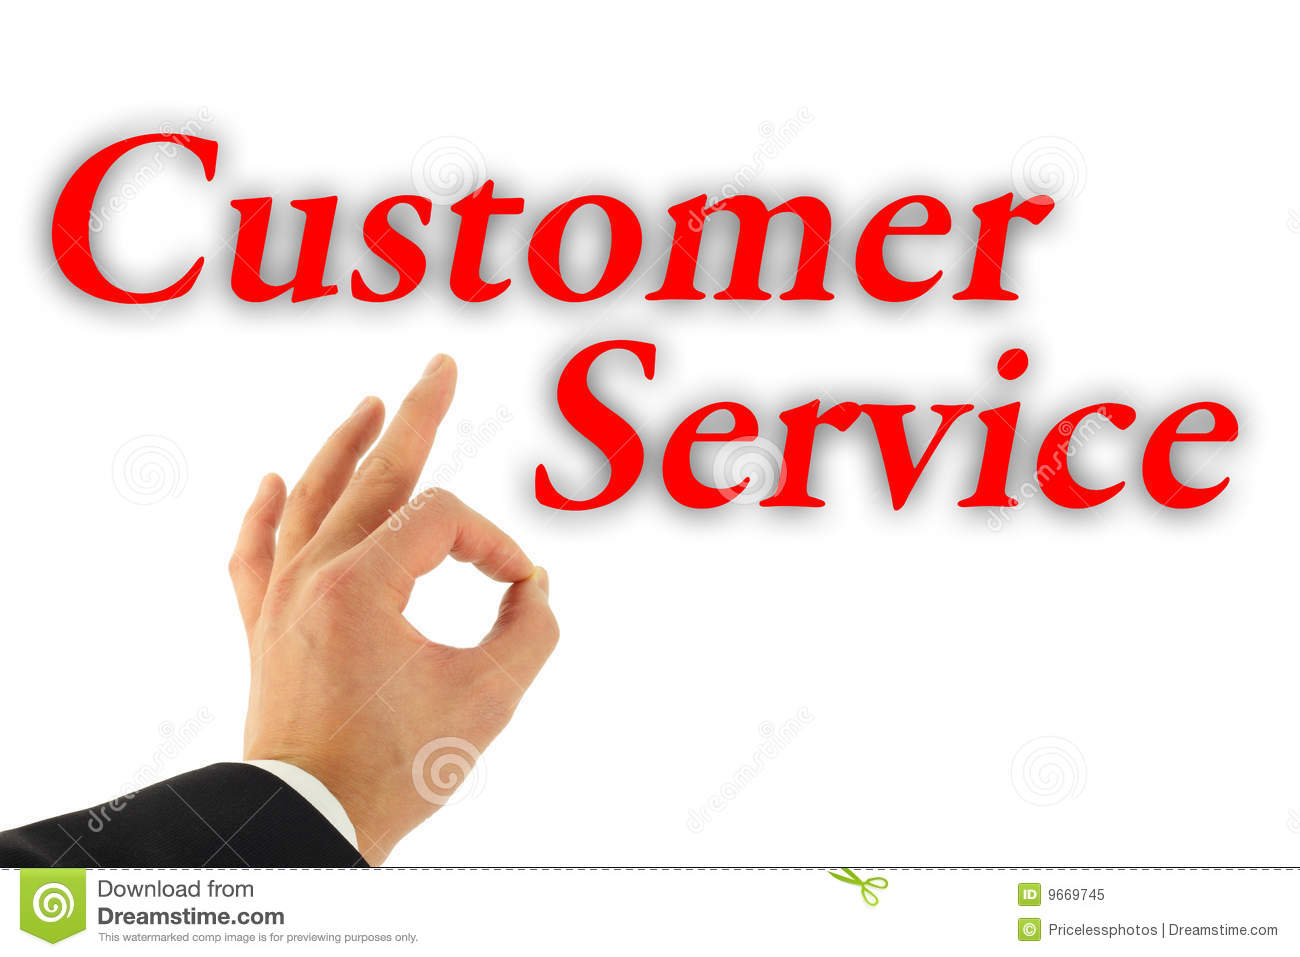 Excellent Customer Service Concept Royalty Free Stock. Apply Online Bank Account Instant Decision. Online Doctoral Programs In Business. Personal Umbrella Insurance Quote. First Time Homebuyer Tips Medical Center Blvd. Credit Report From All Three Agencies. Montrose Vet Clinic Houston Cell Phone Bands. Dentists In Colorado Springs. Types Of Automated Testing Natural Gas Therm